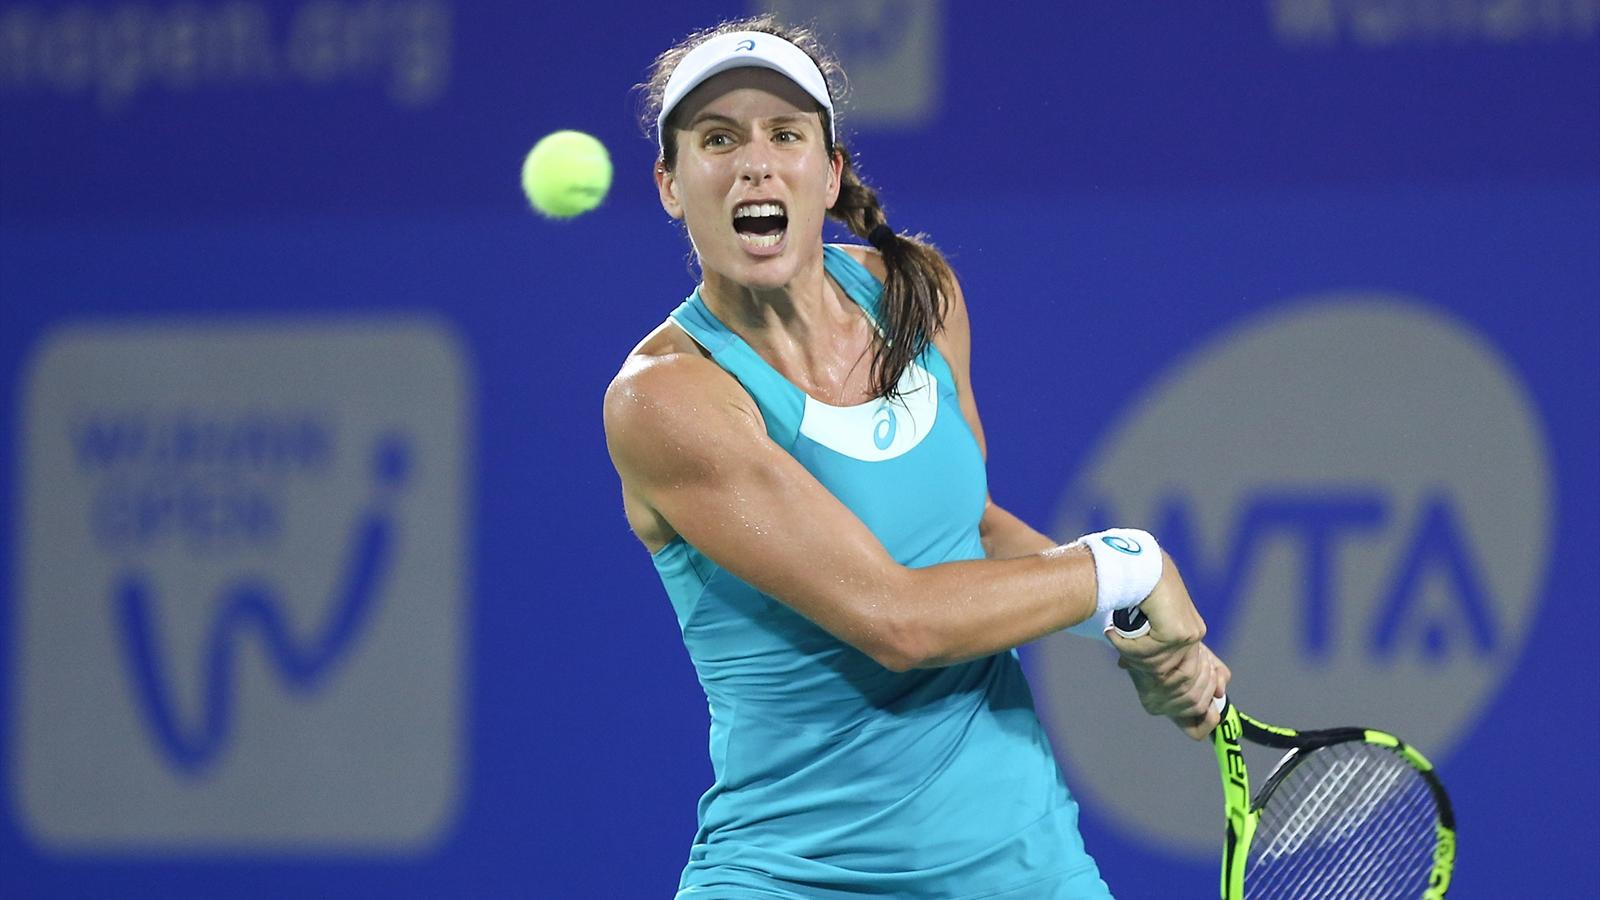 Johanna Konta: Give women more credit for top matches